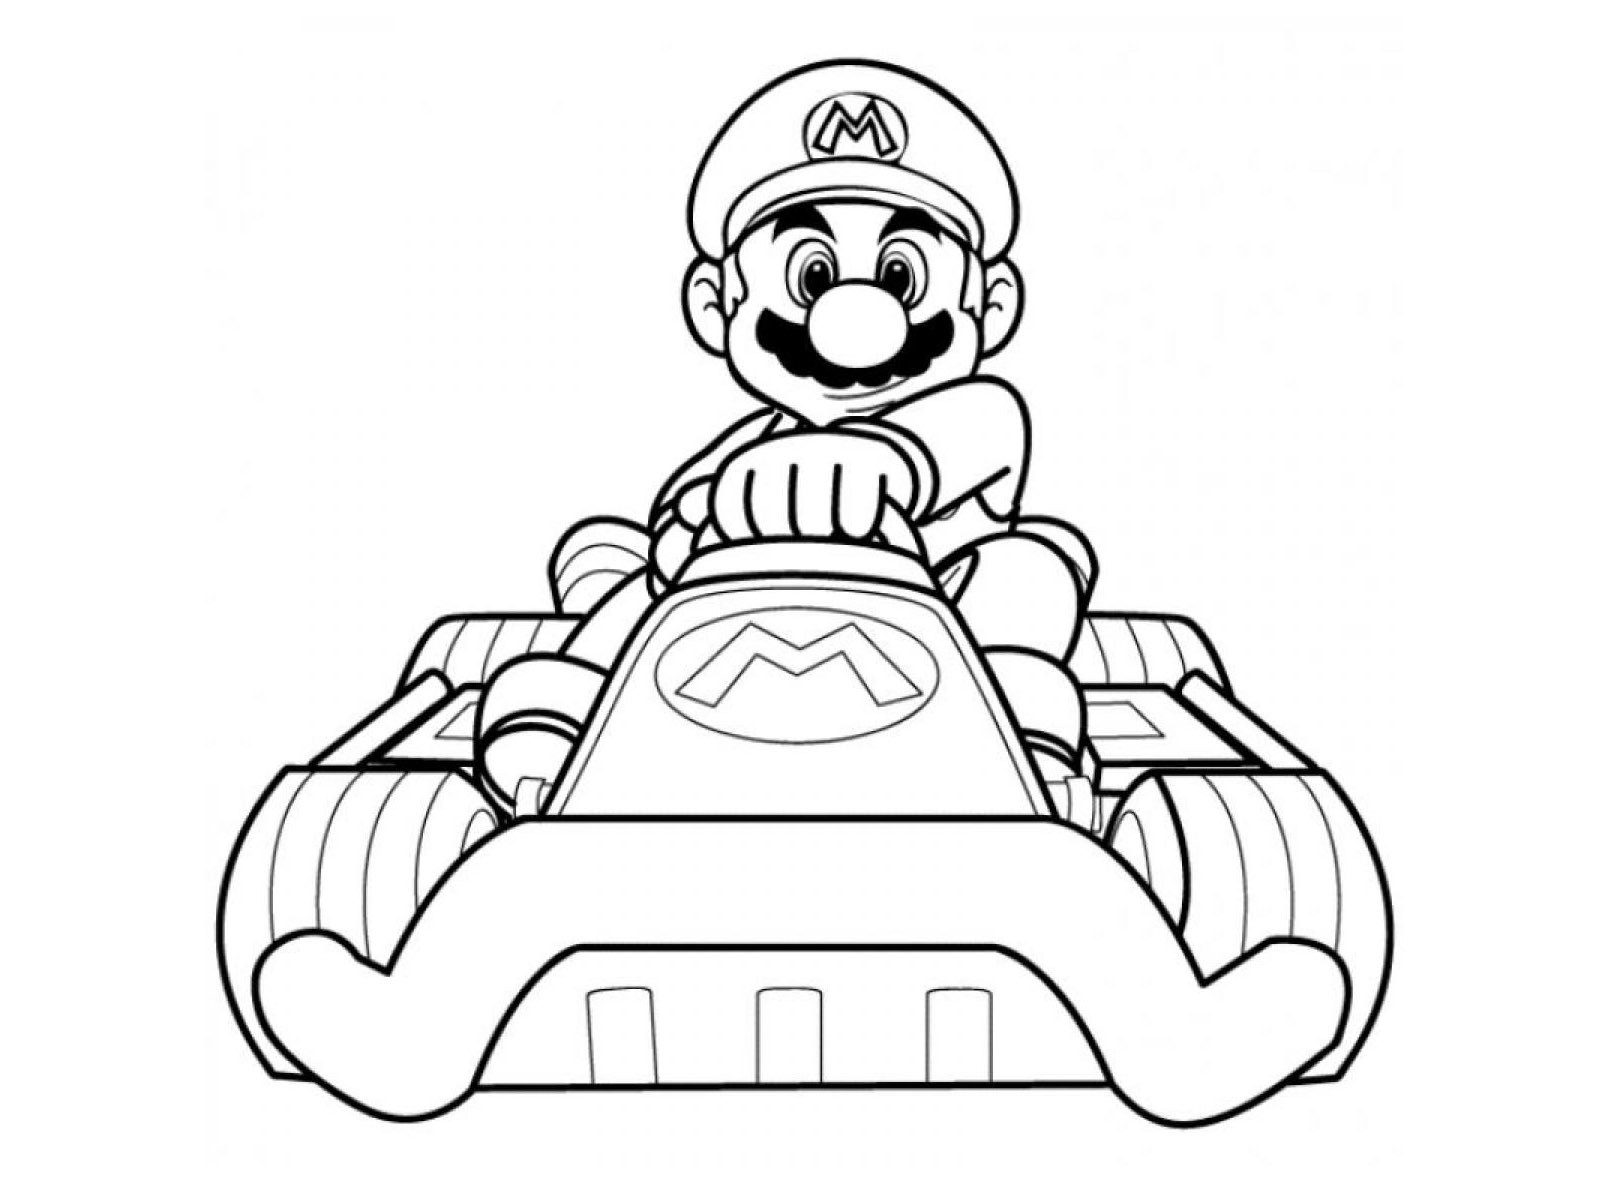 1608x1183 Mario Kart Video Games Printable Coloring Pages Amazing Cart Acpra